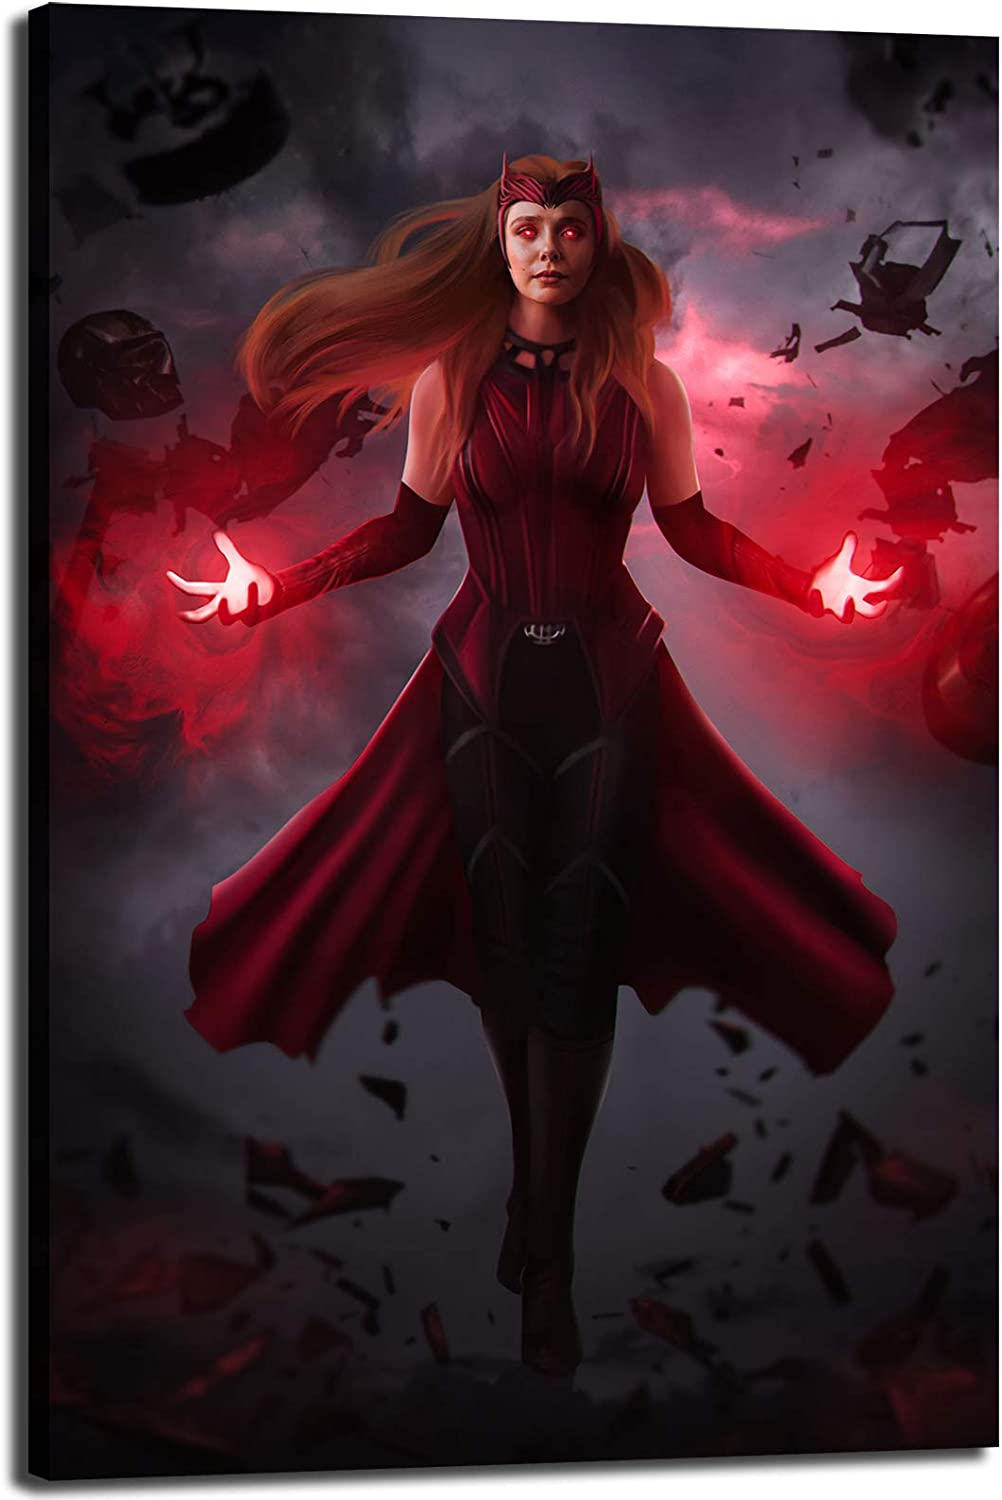 Avengers Scarlet Witch Movie 優先配送 Poster 限定タイムセール HD Canvas Ho Painting Print